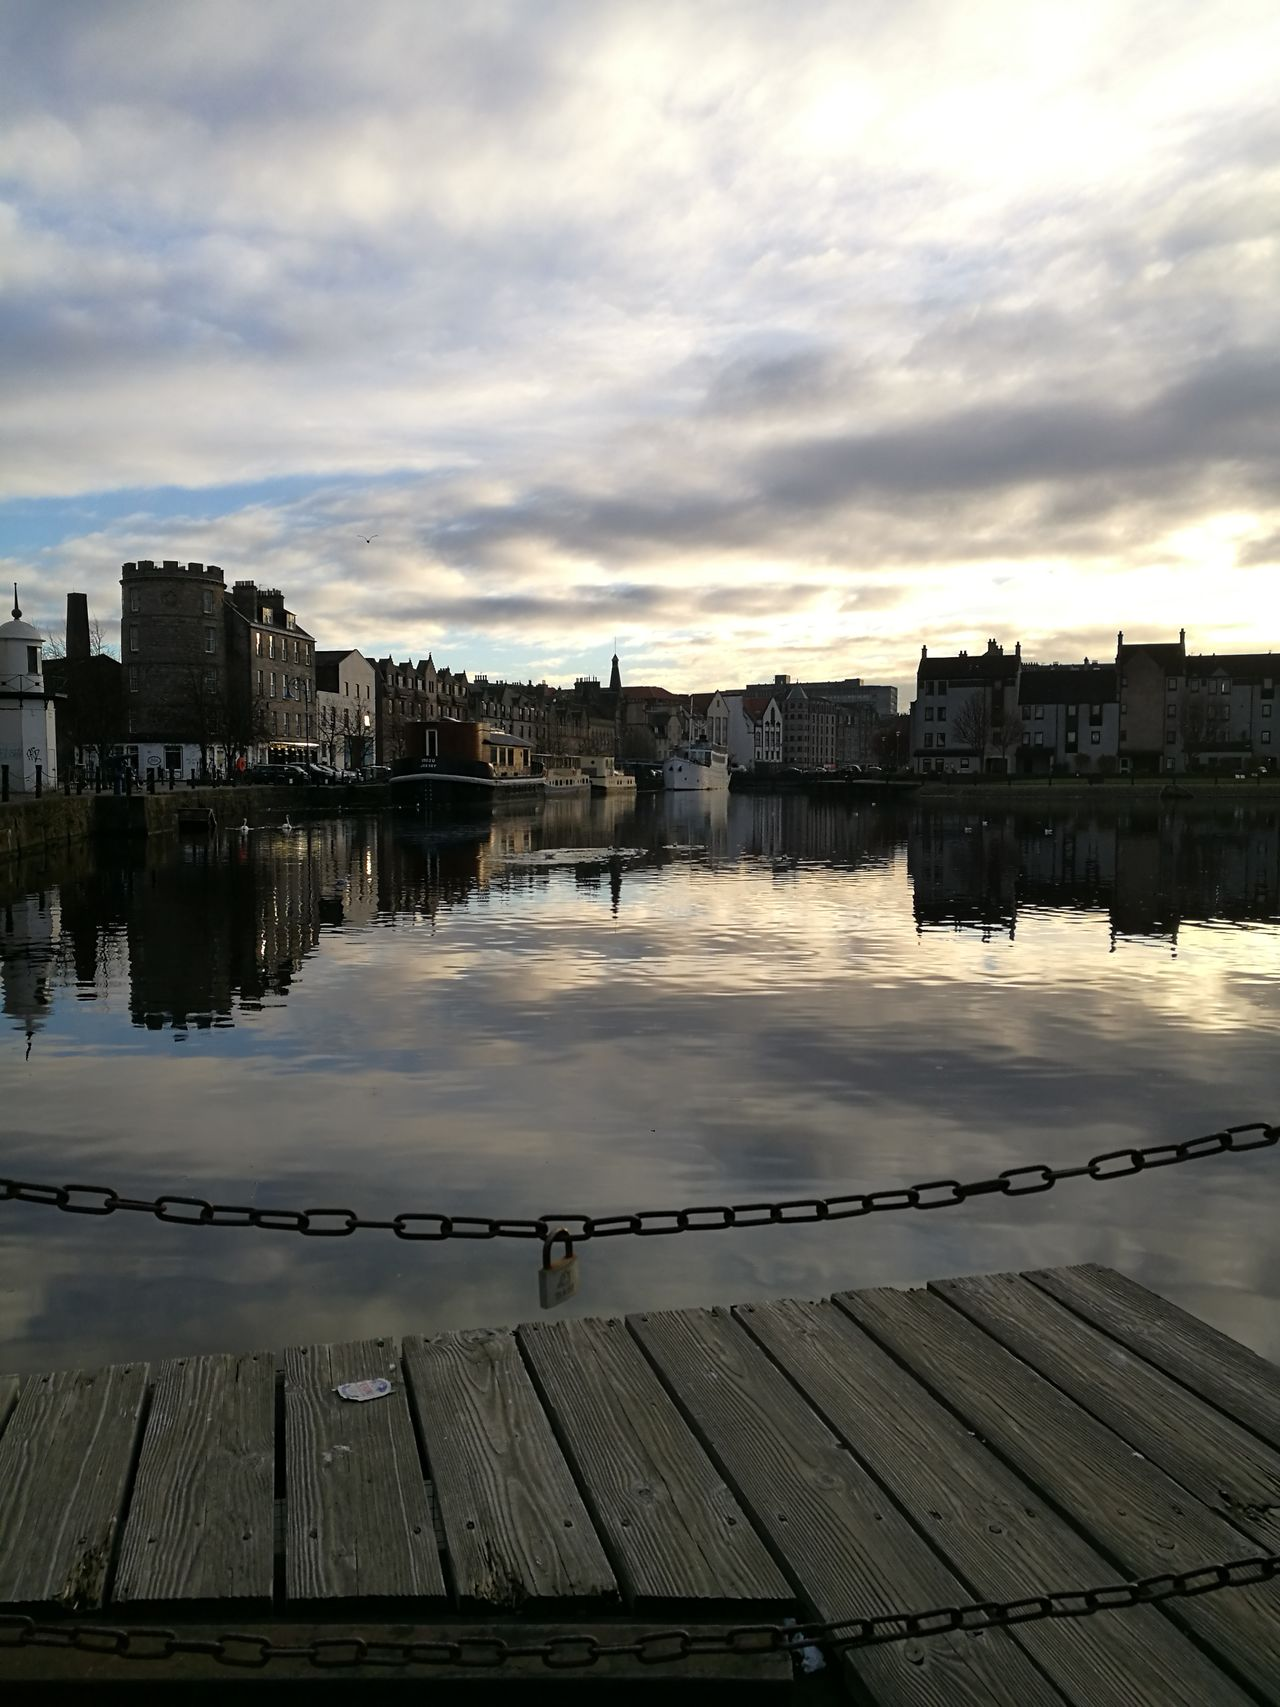 The view at The Shore in Leith. Edinburgh. Scotland. First Eyeem Photo My Year My View Huawei P9 Leica